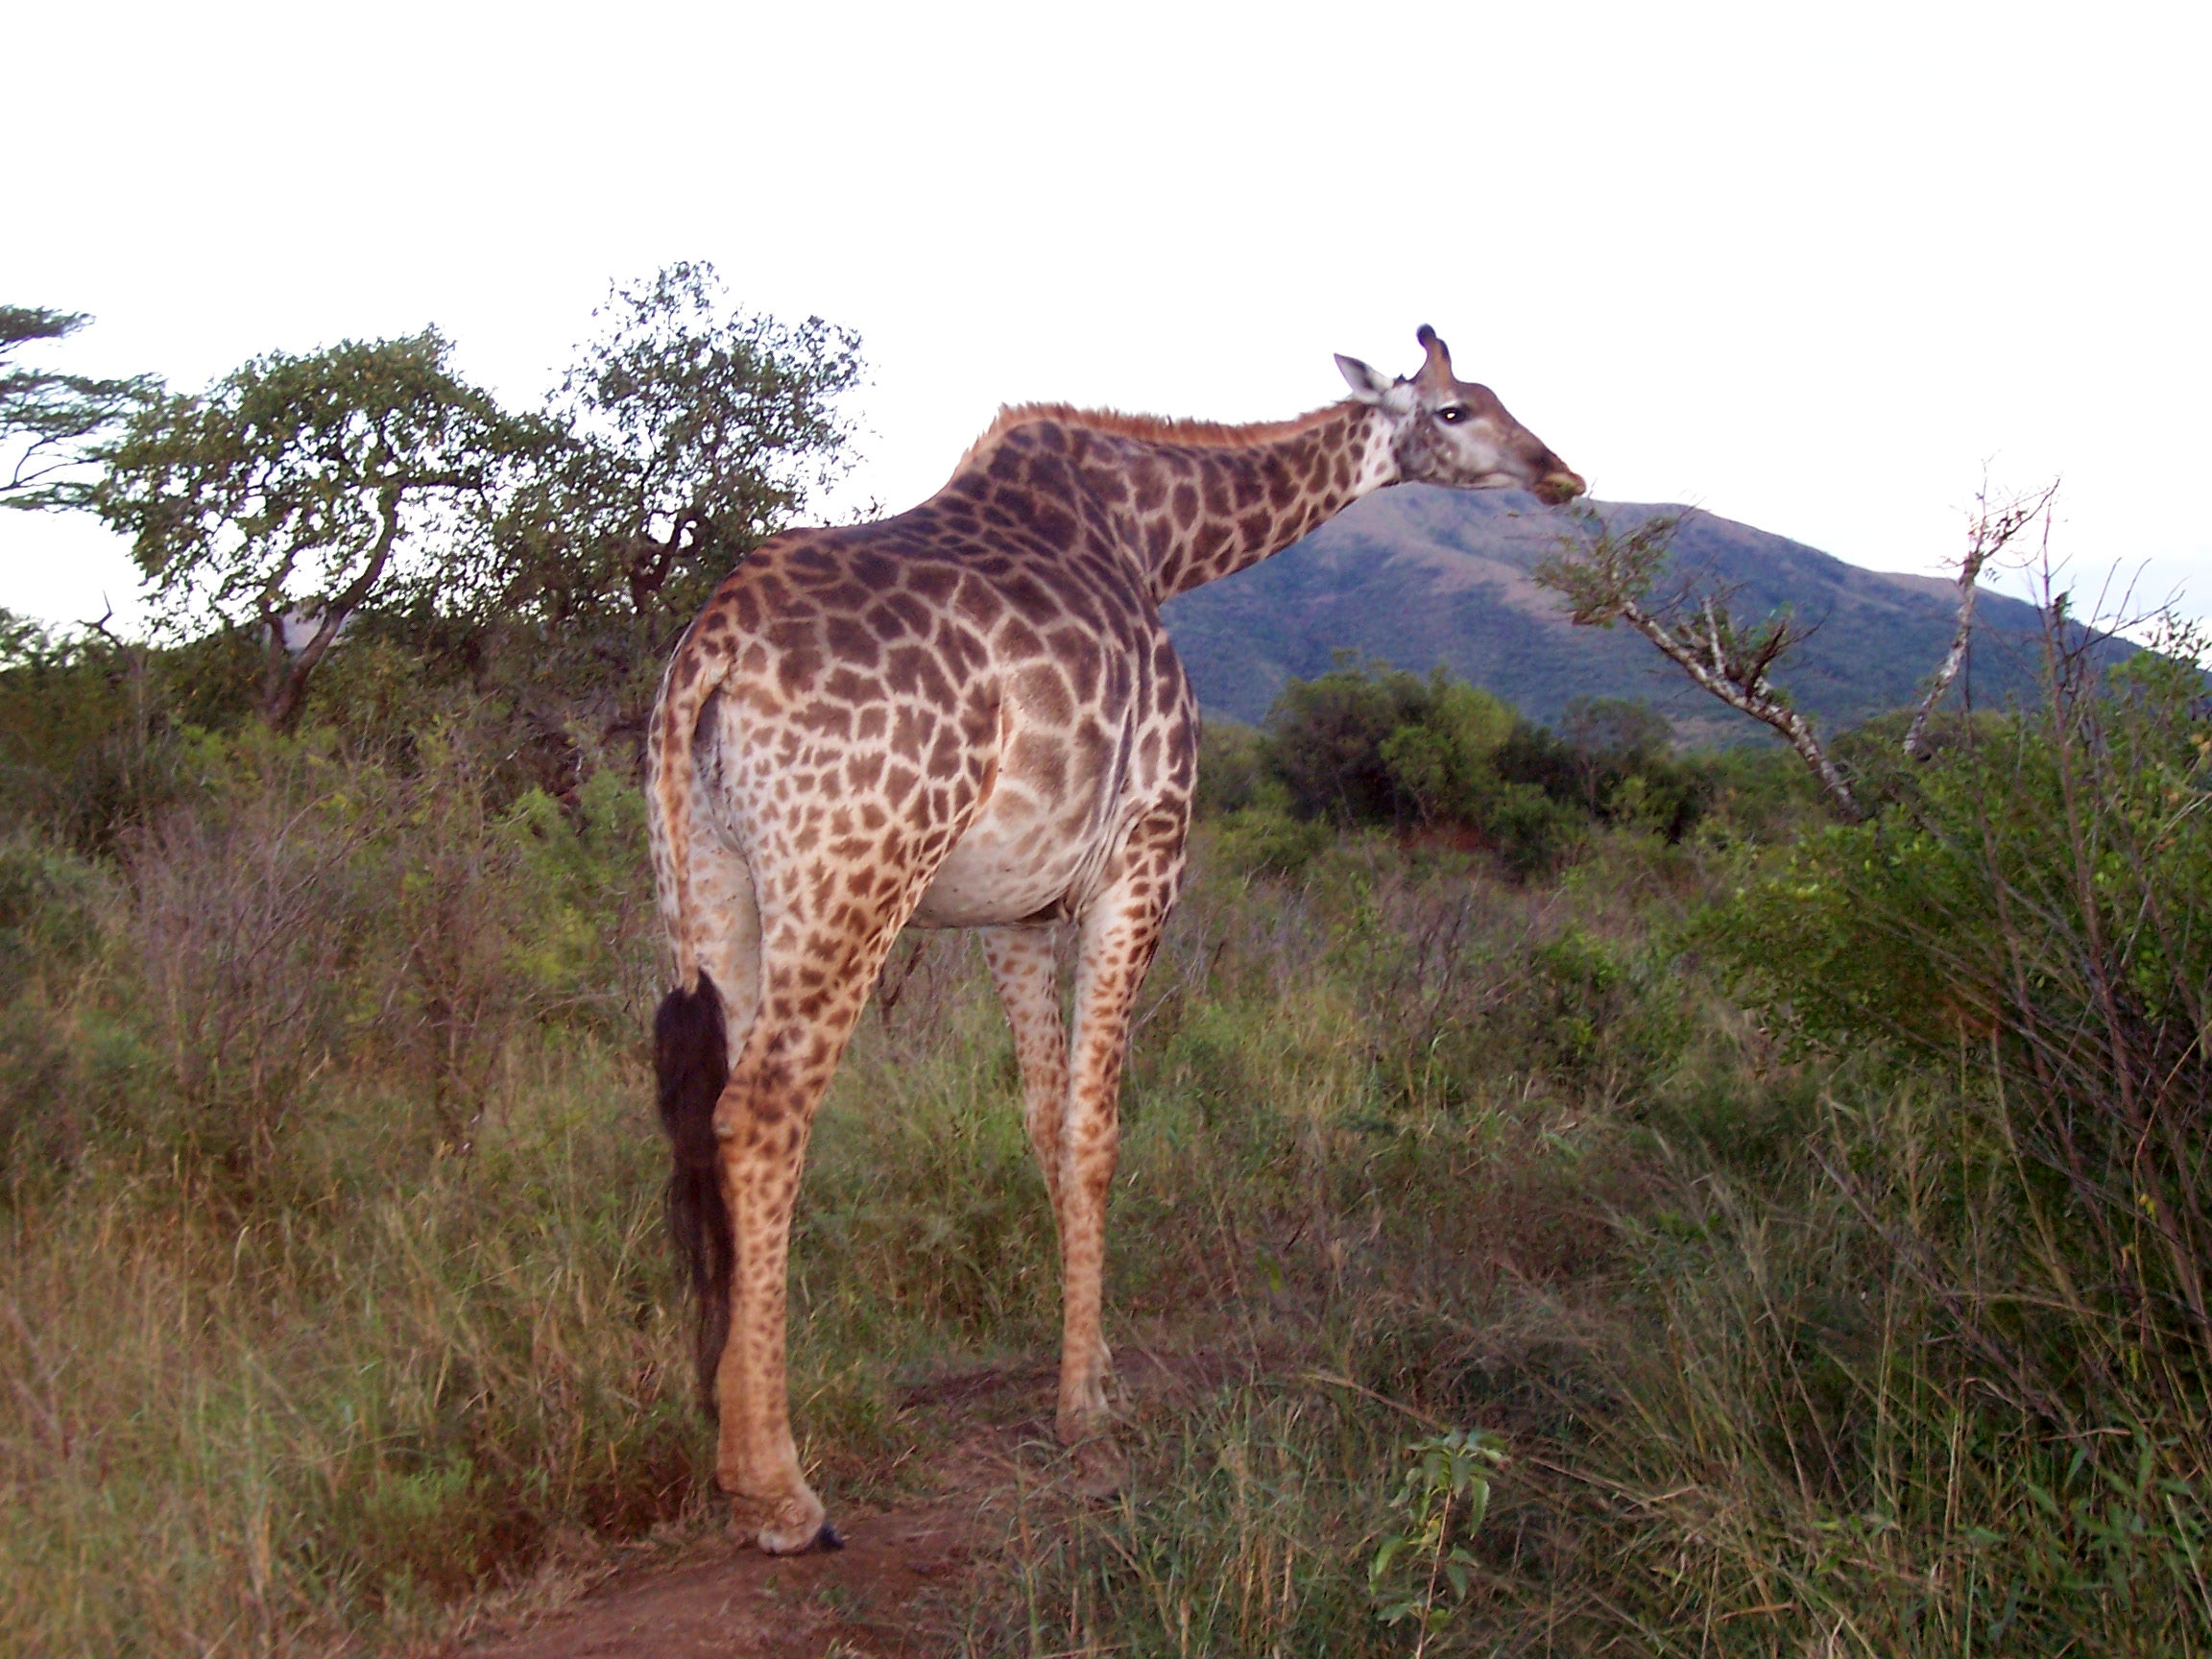 Caption: Giraffe on lunch break., Credit: Tonya Fitzpatrick